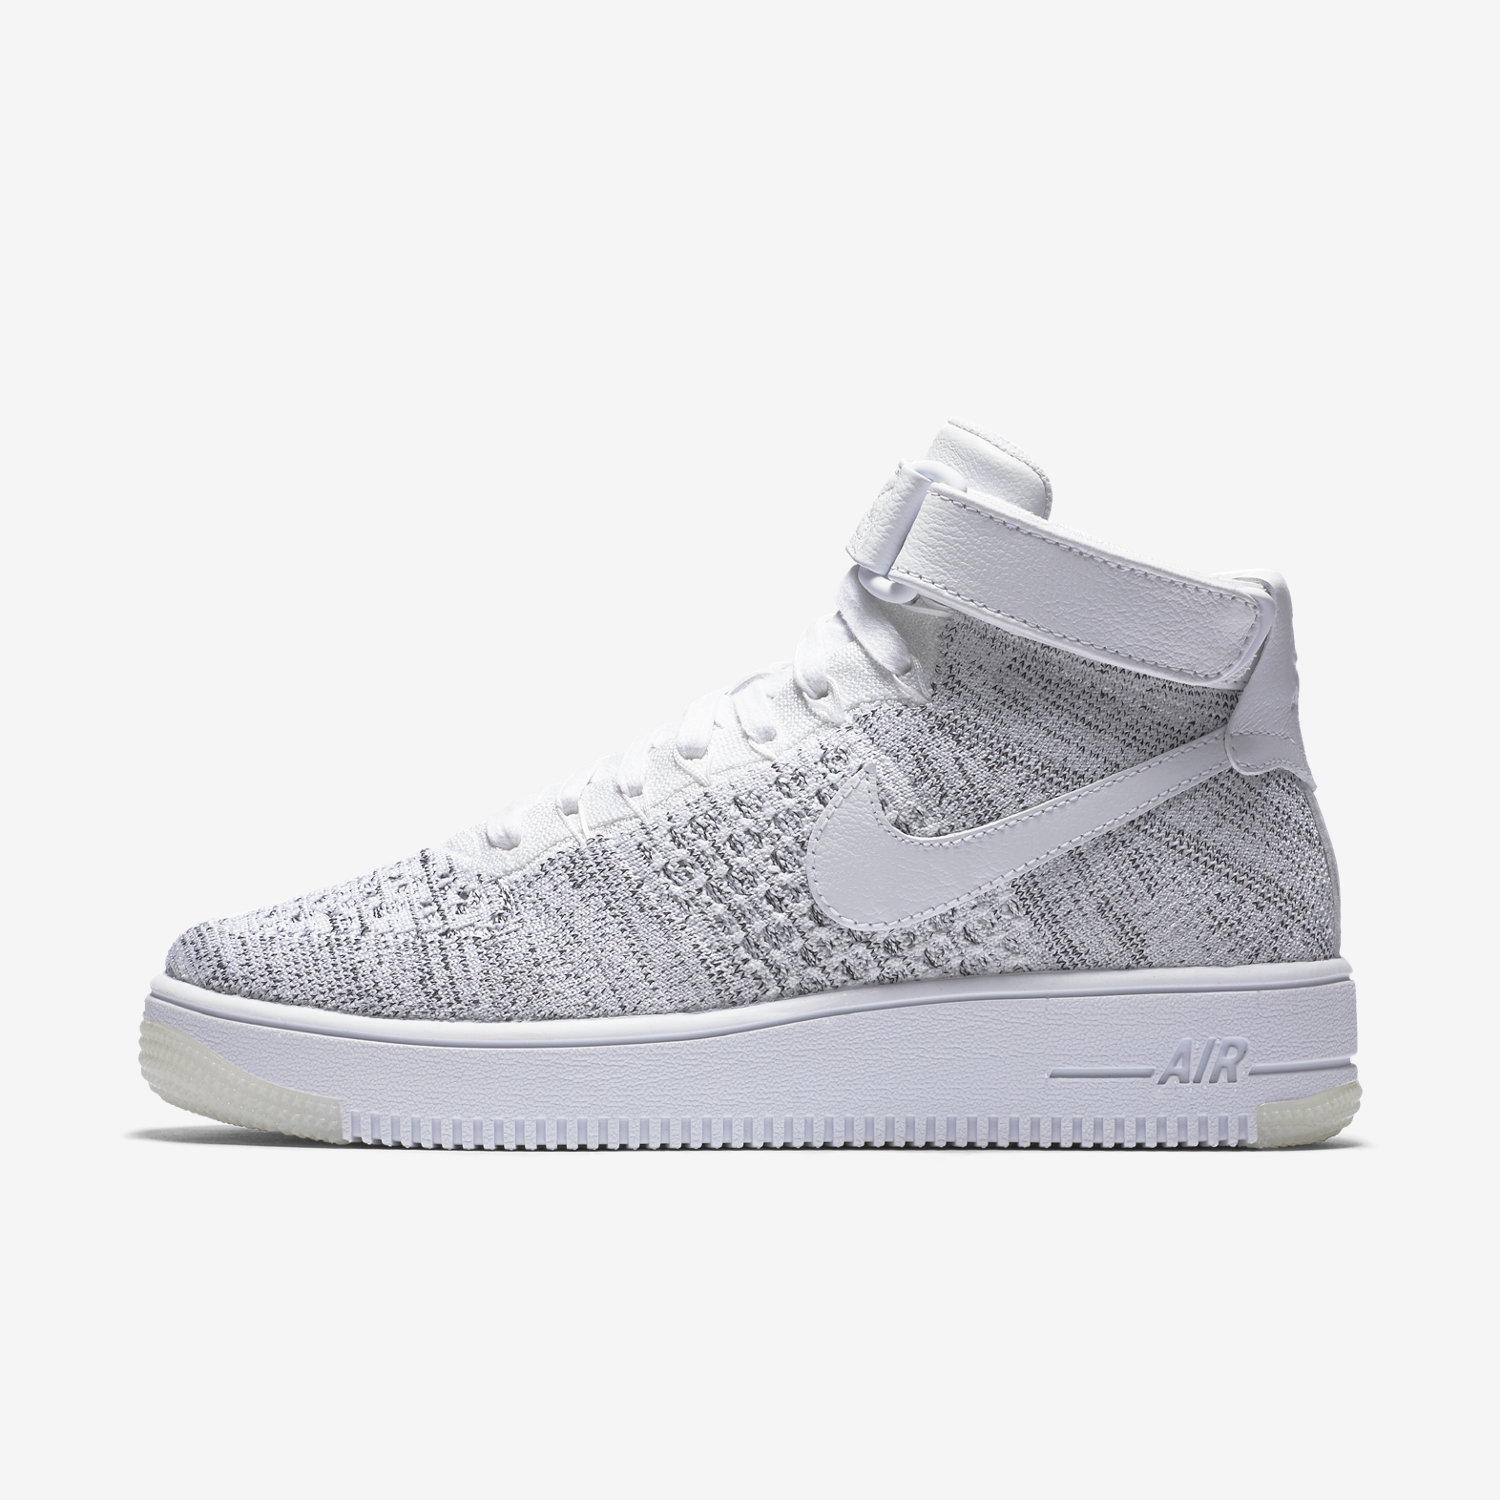 nike air force 1 ultra flyknit sizing air